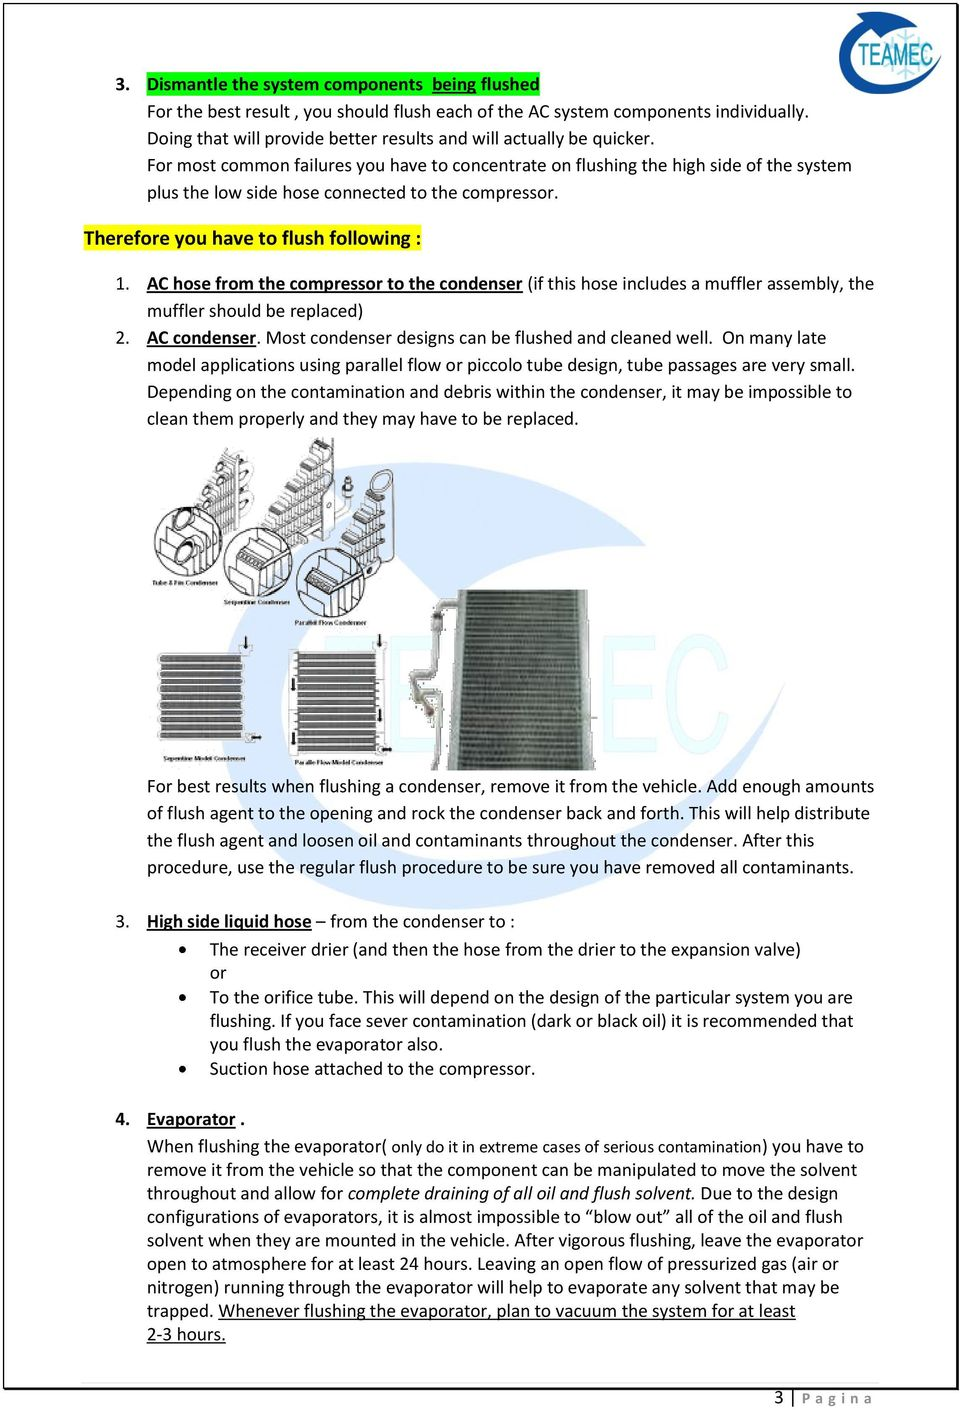 Flushing and Cleaning the A/C System - PDF